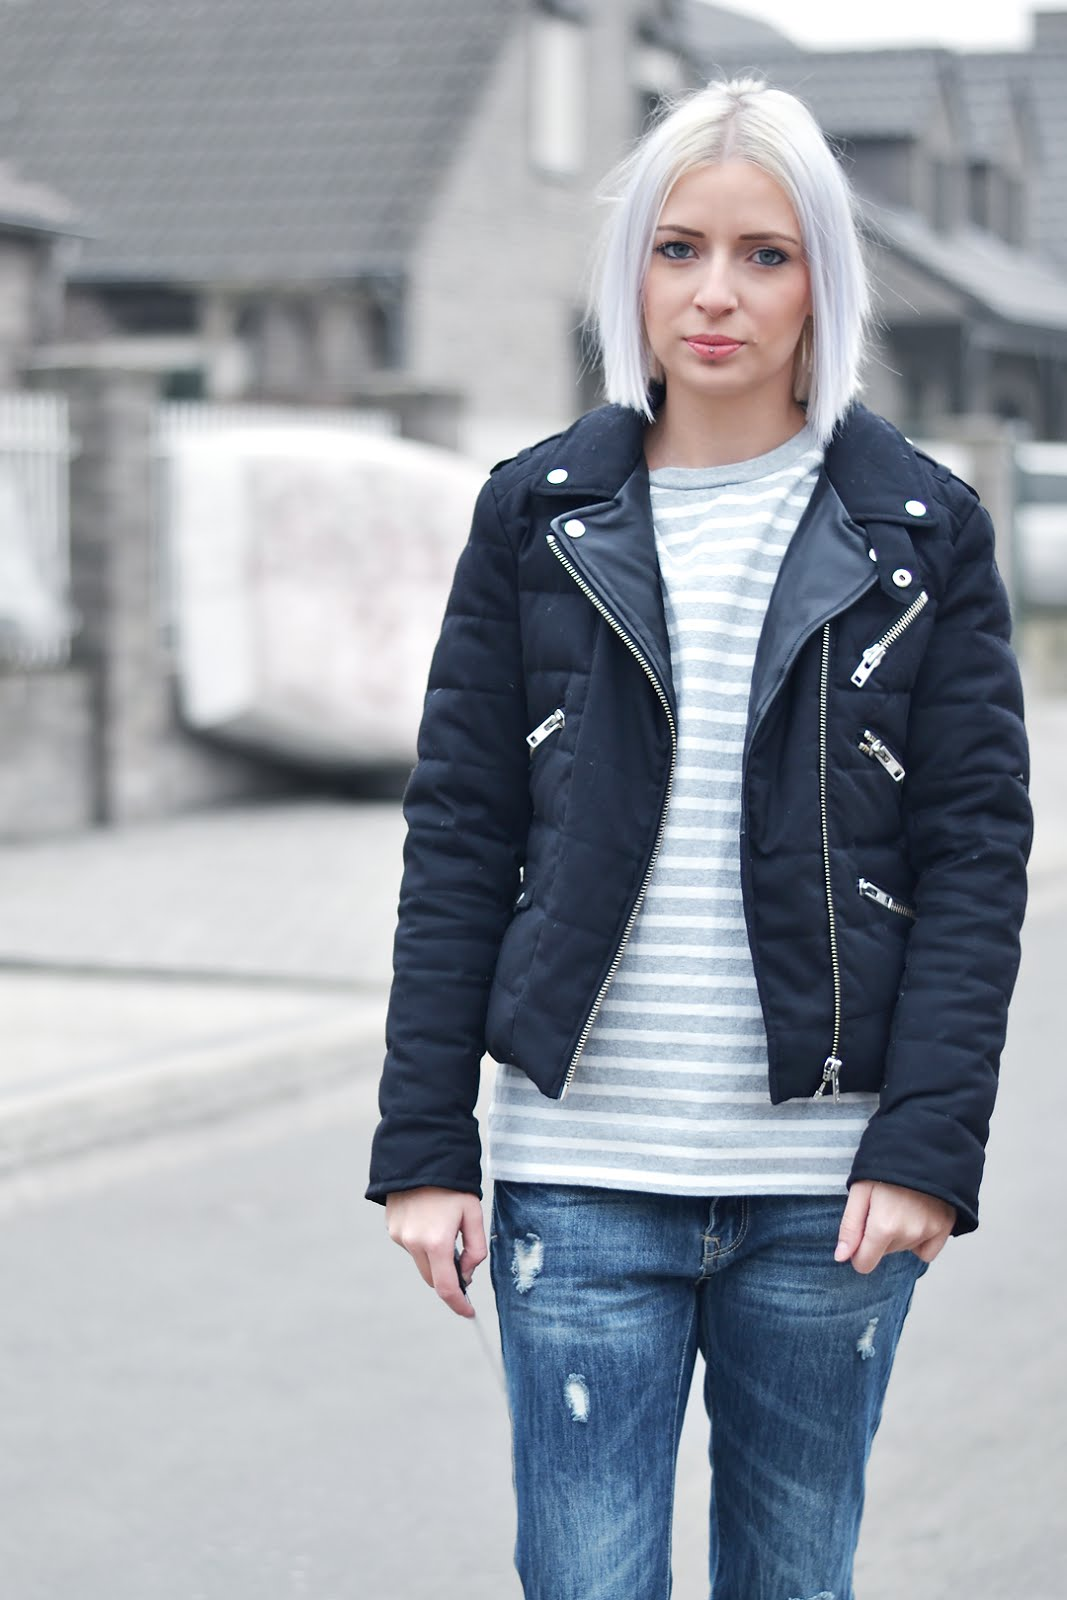 Cos striped top, grey, the kooples, jacket, ripped jeans, boyfriend jeans, primark, slip on, wool ,zara, street style, belgian fashion blogger, belgische mode blogger, ootd, trends, minimal